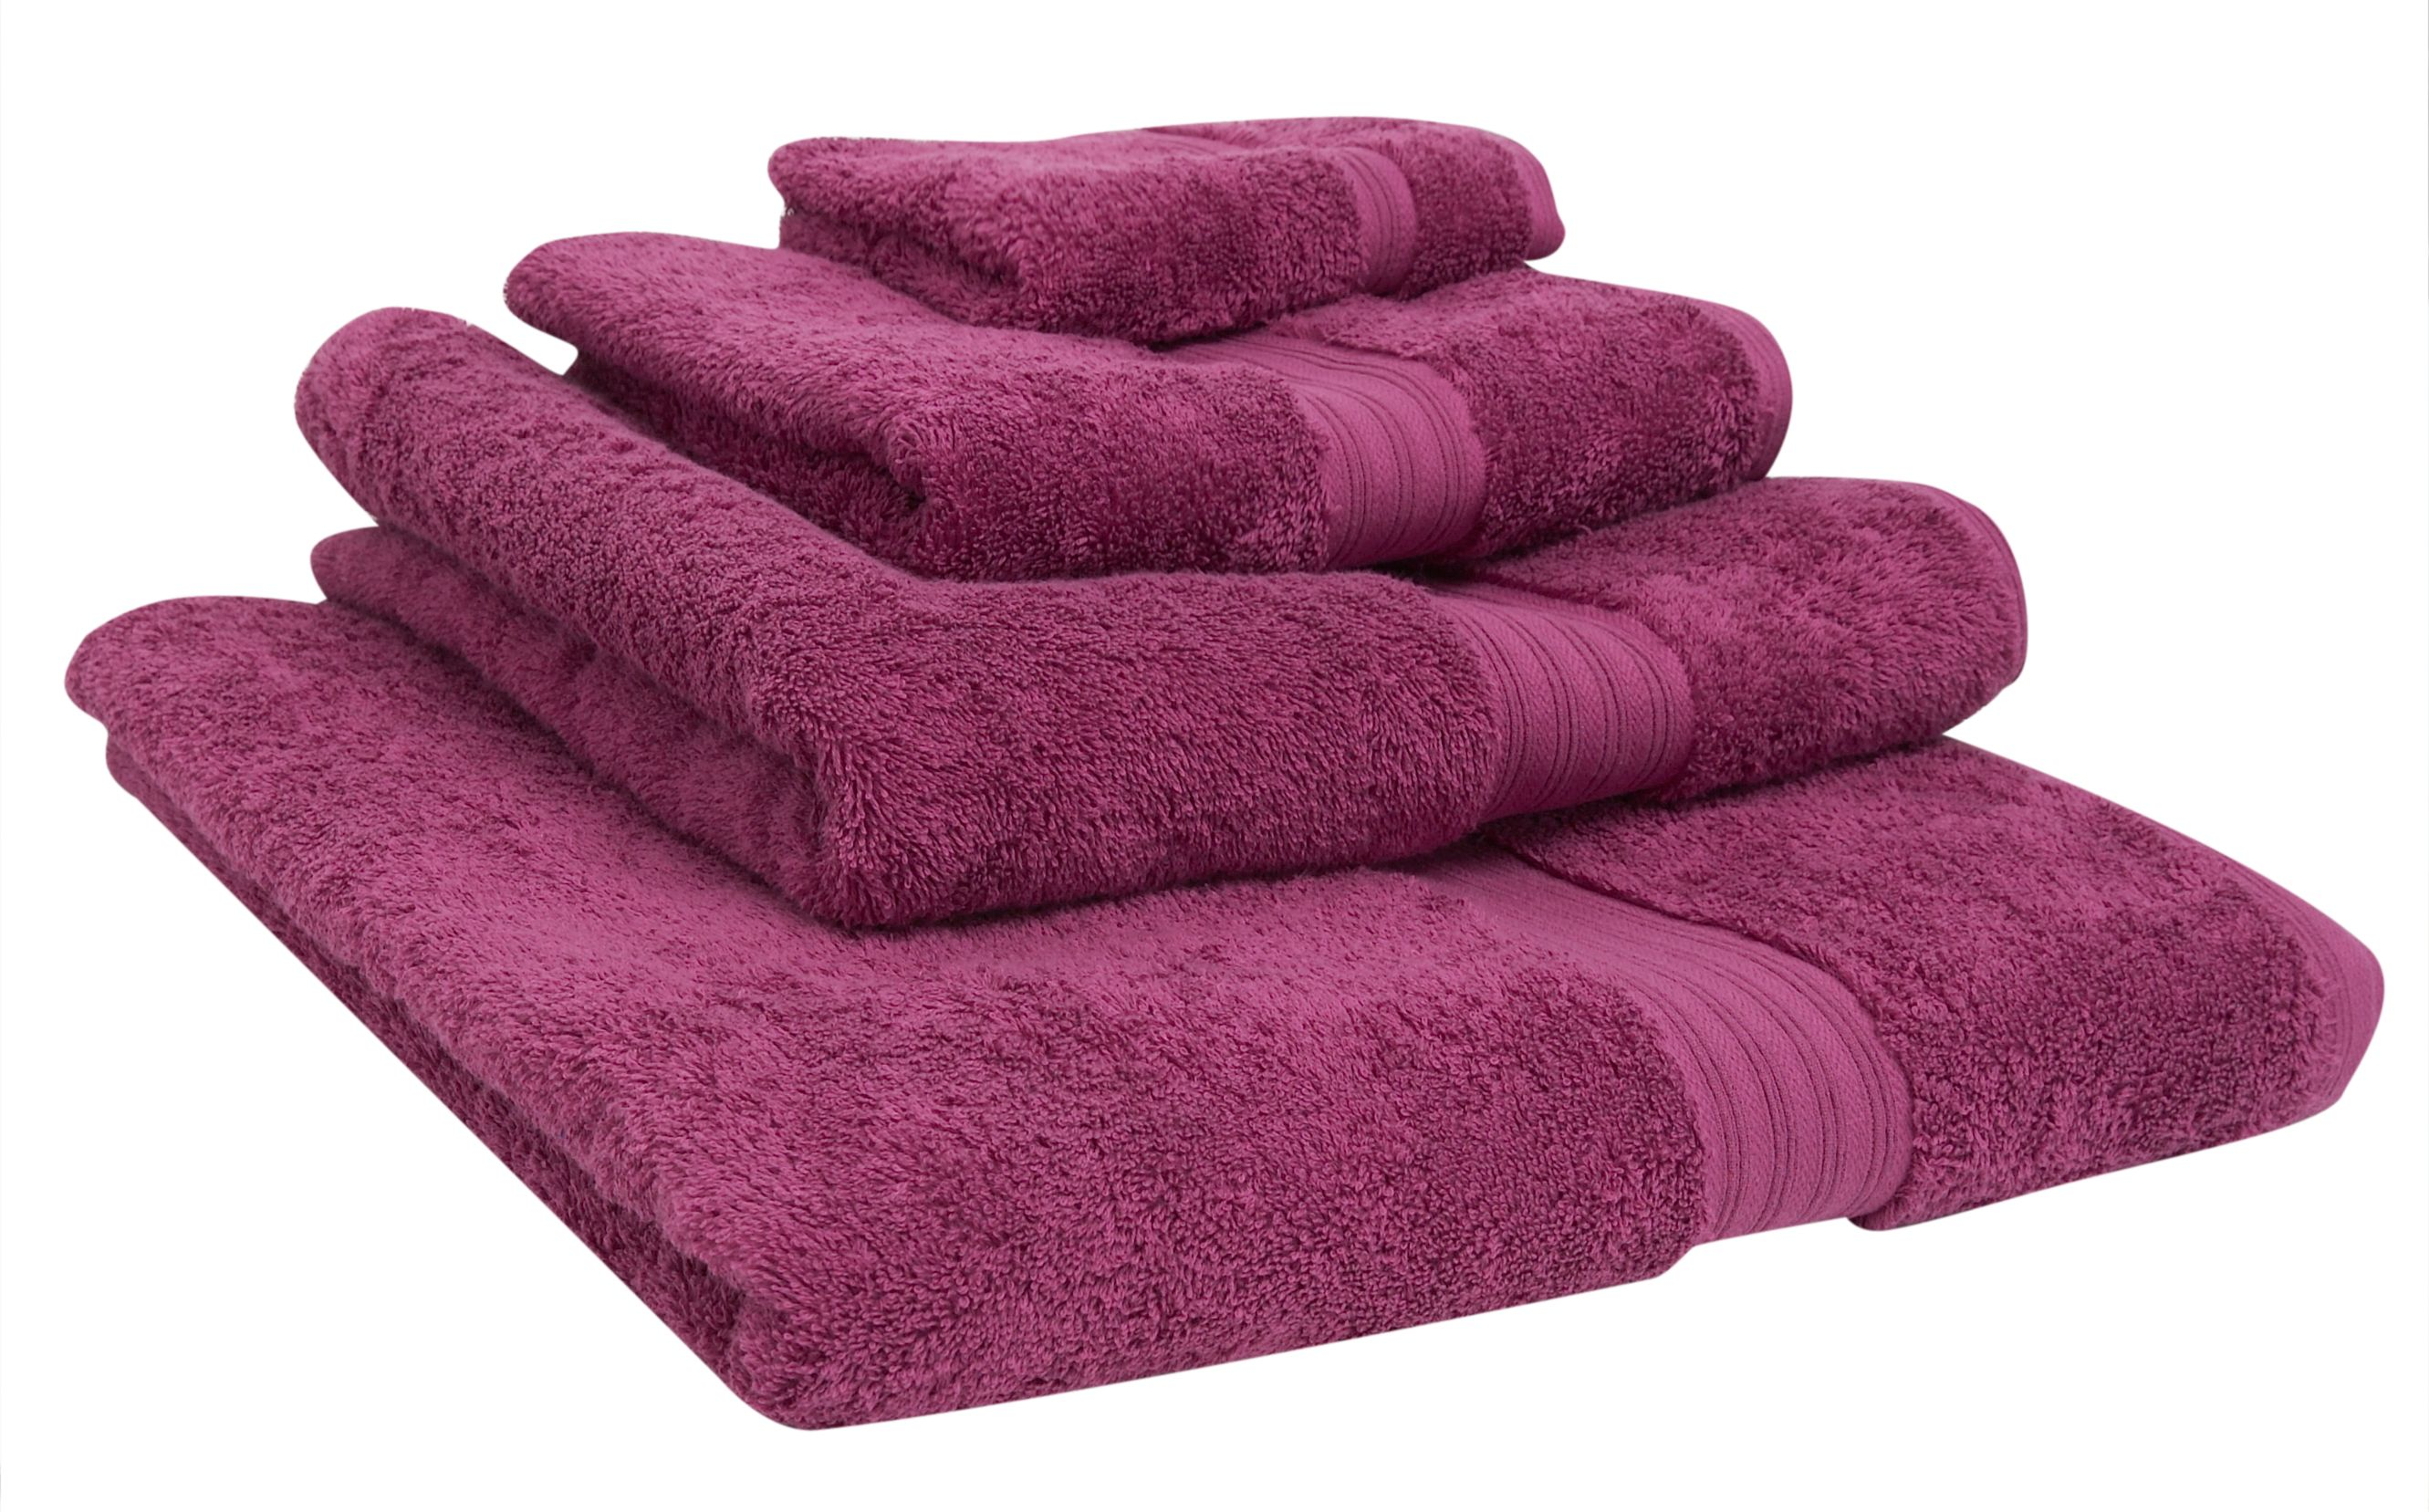 Luxe Egyptain cotton bath sheet in ruby